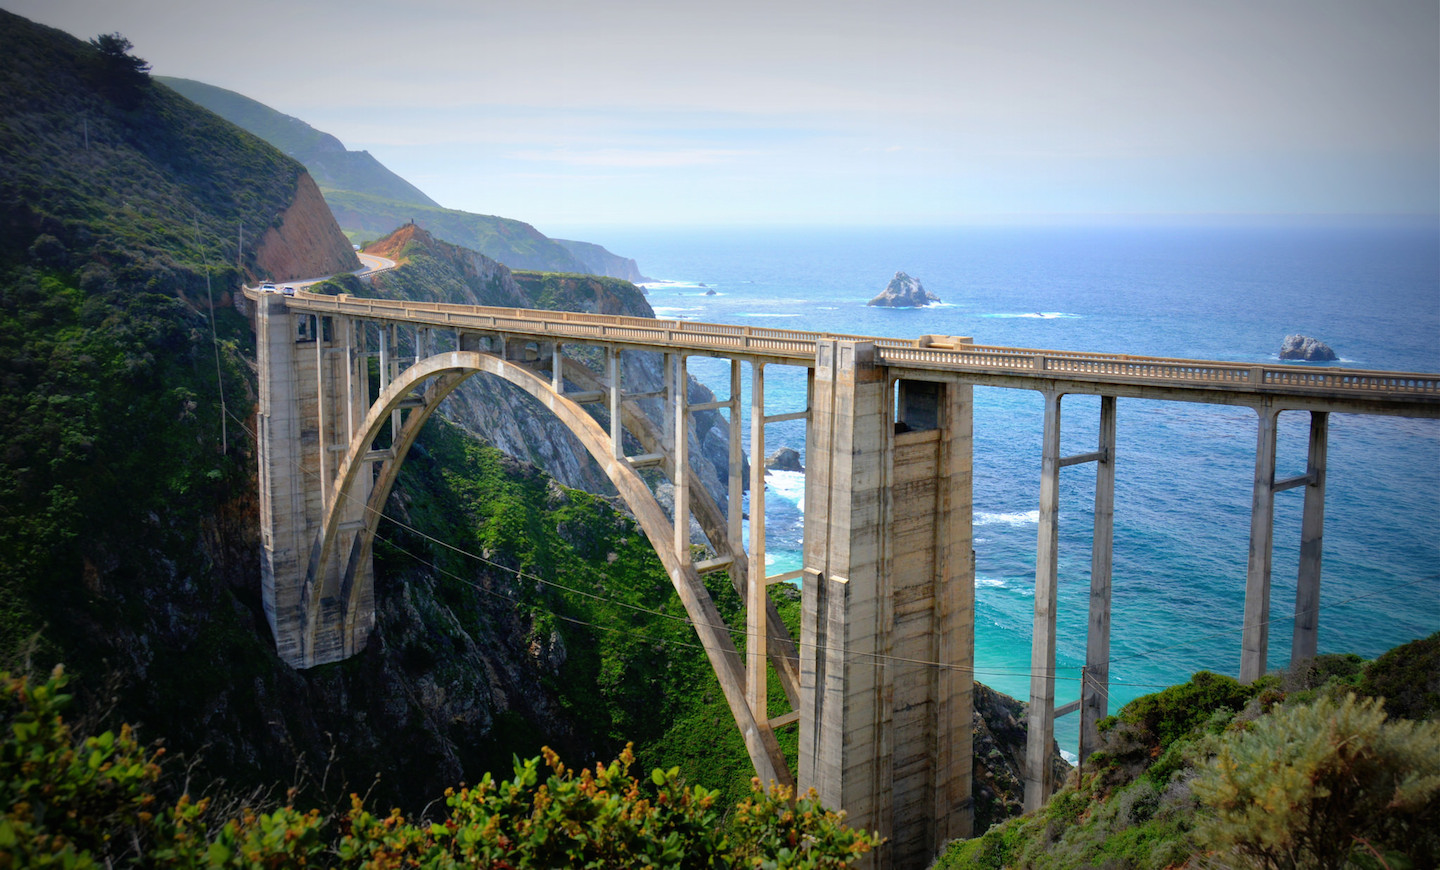 The Bixby Bridge in Big Sur, Calif.